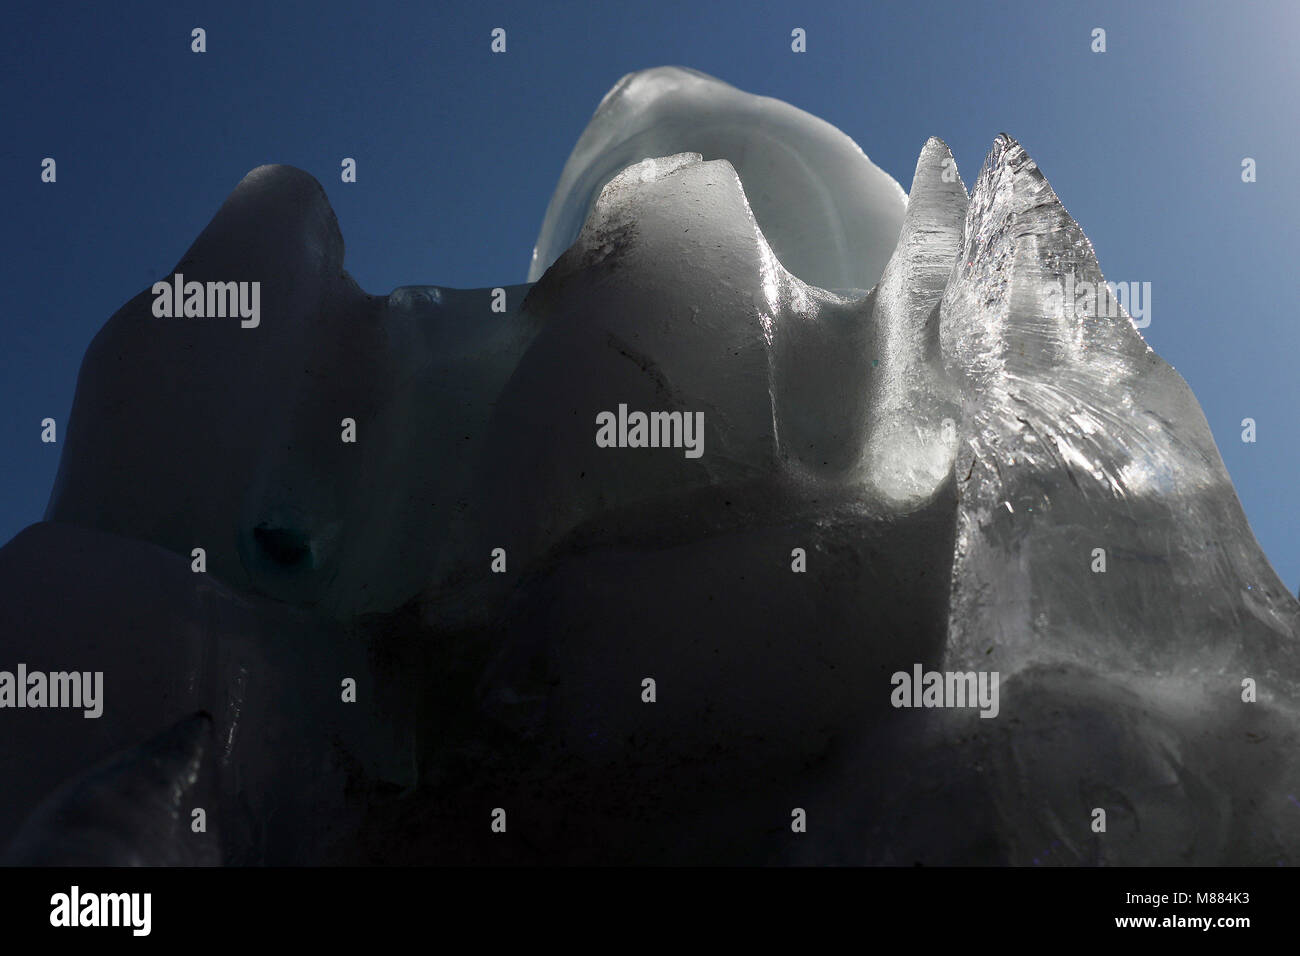 Santiago, Chile. 15th Mar, 2018. A view of a 19 tonnes glacier during the Lollapalooza music festival in Santiago, - Stock Image